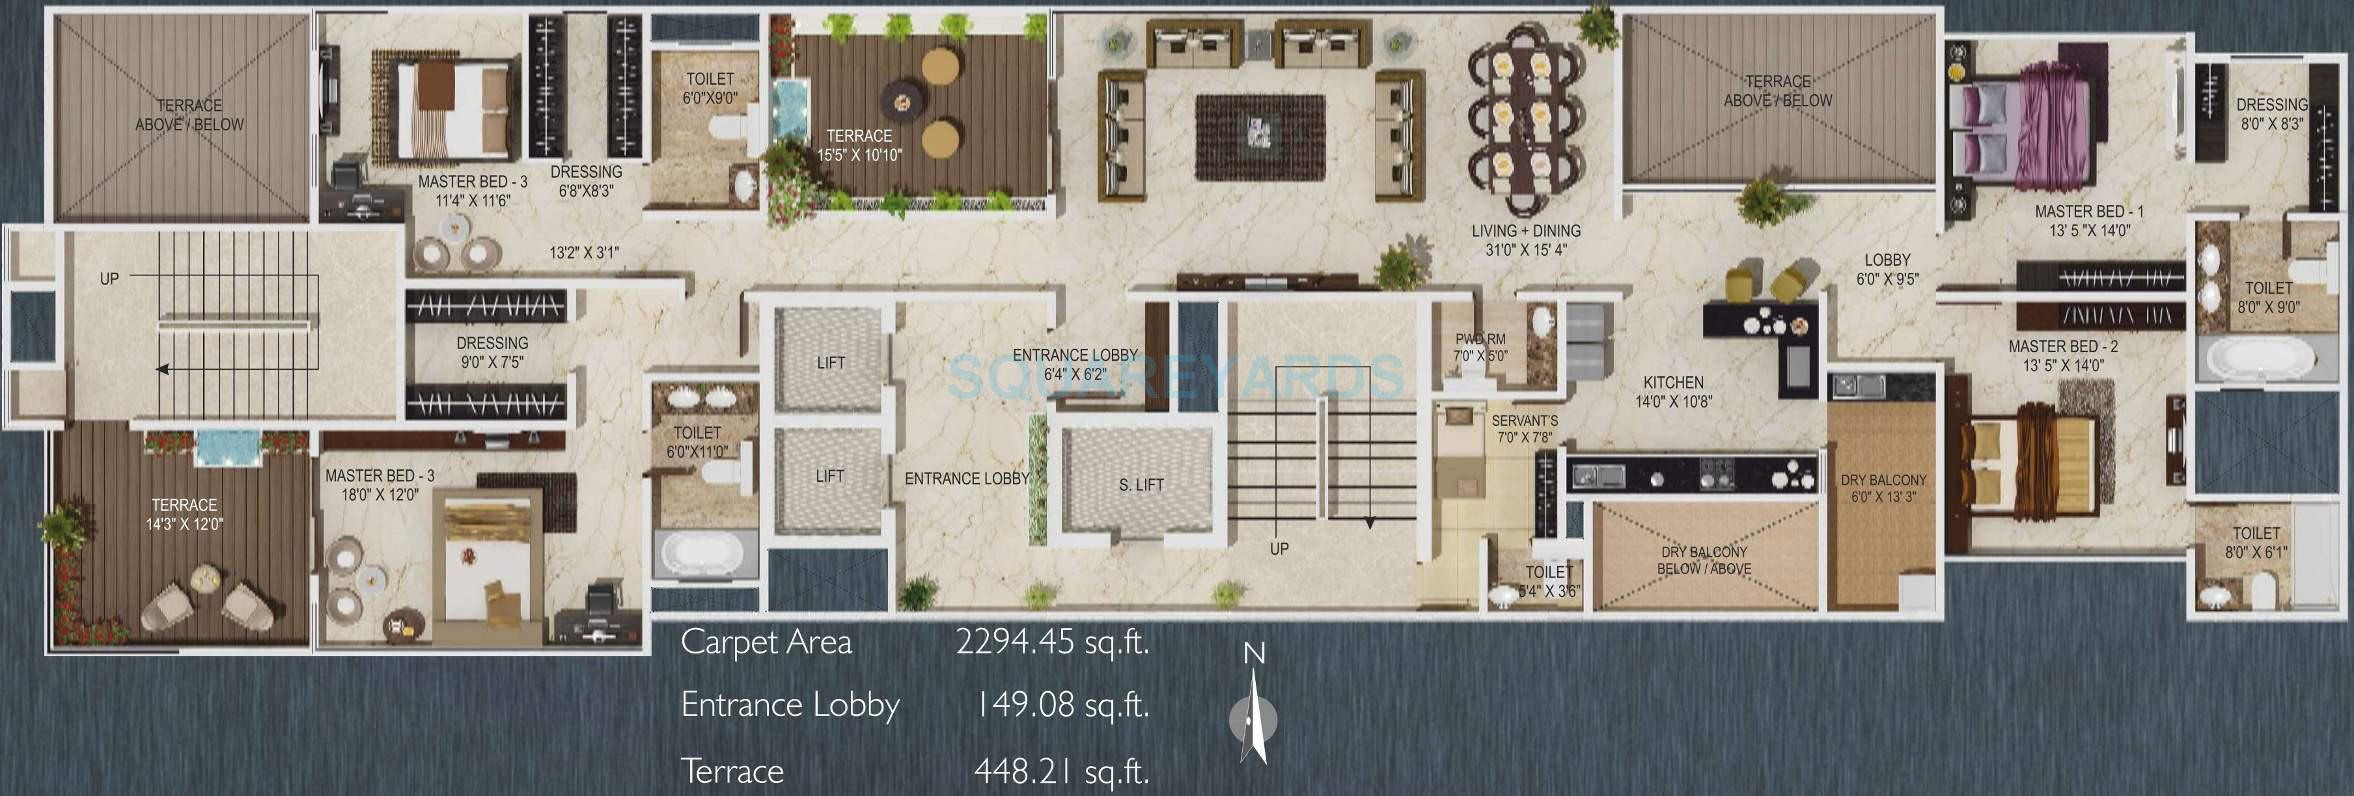 paranjape schemes sky one apartment 4bhk 3727sqft 11012